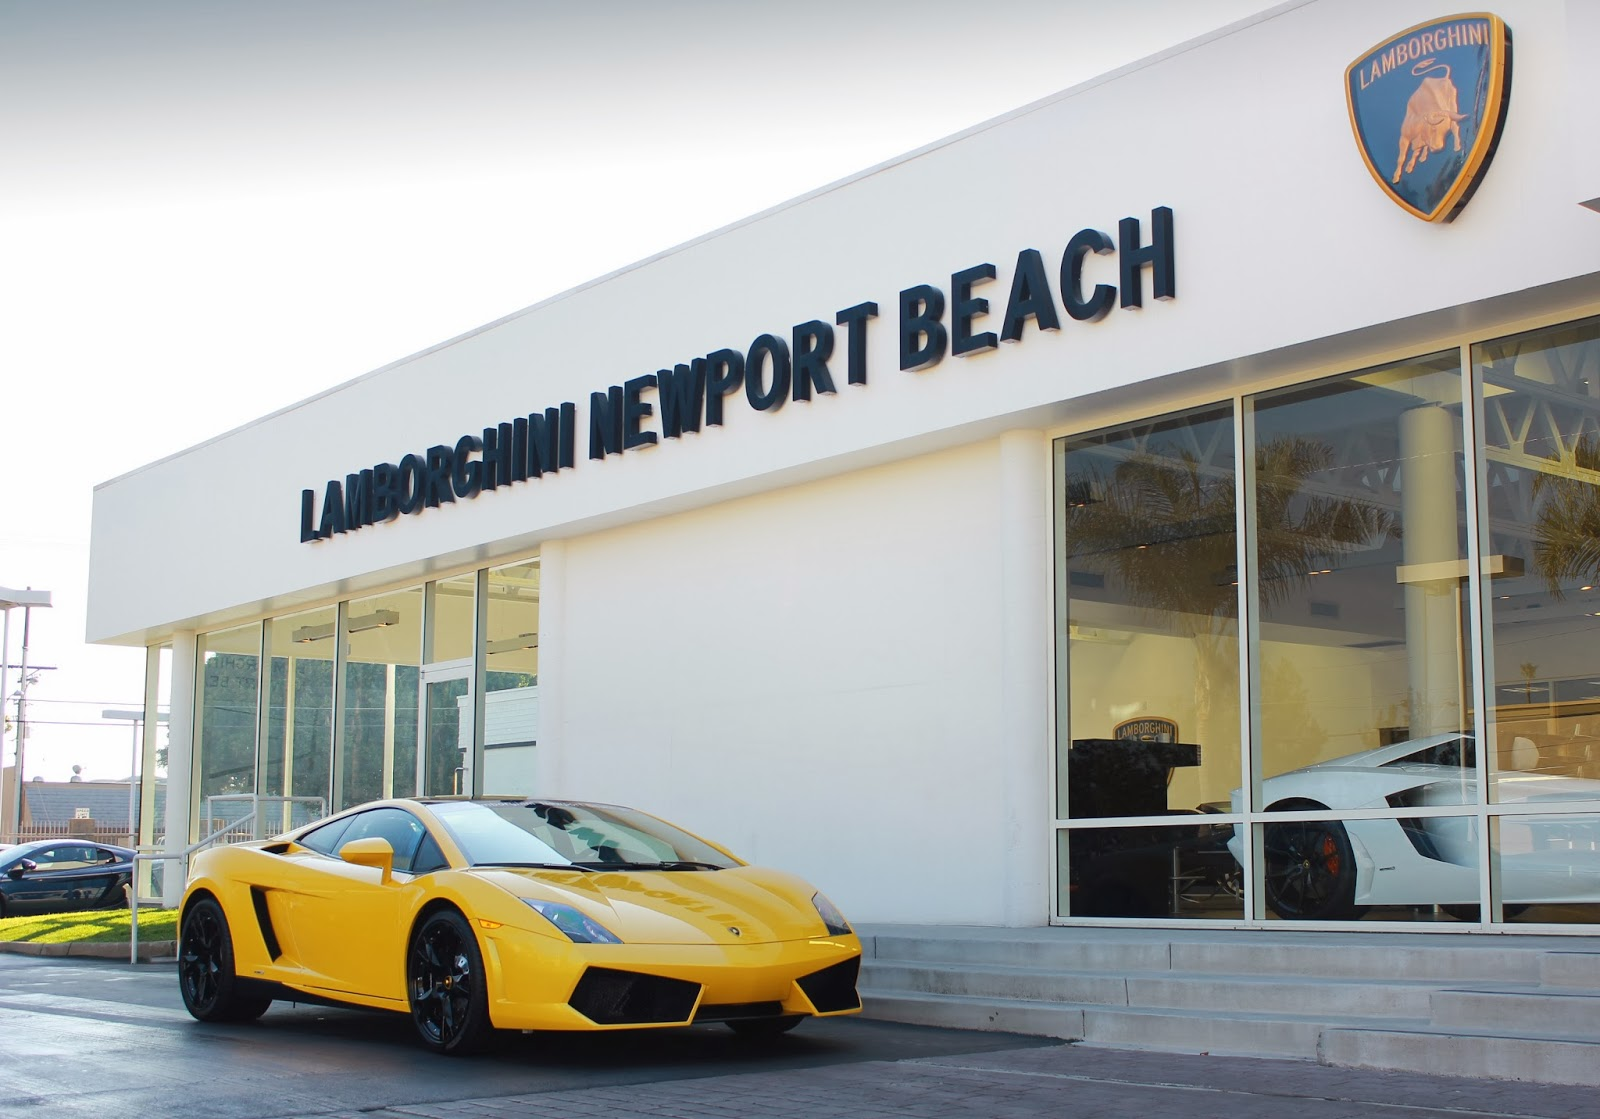 Lamborghini Newport Beach Blog: The Bitcoin saga continues… on 2014 lamborghini gallardo, 2014 lamborghini enzo, 2014 lamborghini reventon, 2014 lamborghini elemento, 2014 lamborghini countach, 2014 lamborghini diablo, 2014 lamborghini gt, 2014 lamborghini may, 2014 lamborghini tron, 2014 lamborghini cabrera, 2014 lamborghini california, 2014 lamborghini huracan, 2014 lamborghini estoque, 2014 lamborghini suv, 2014 lamborghini superveloce, 2014 lamborghini aventador, 2014 lamborghini truck, 2014 lamborghini interior, 2014 lamborghini egoista, 2014 lamborghini wallpaper hd,